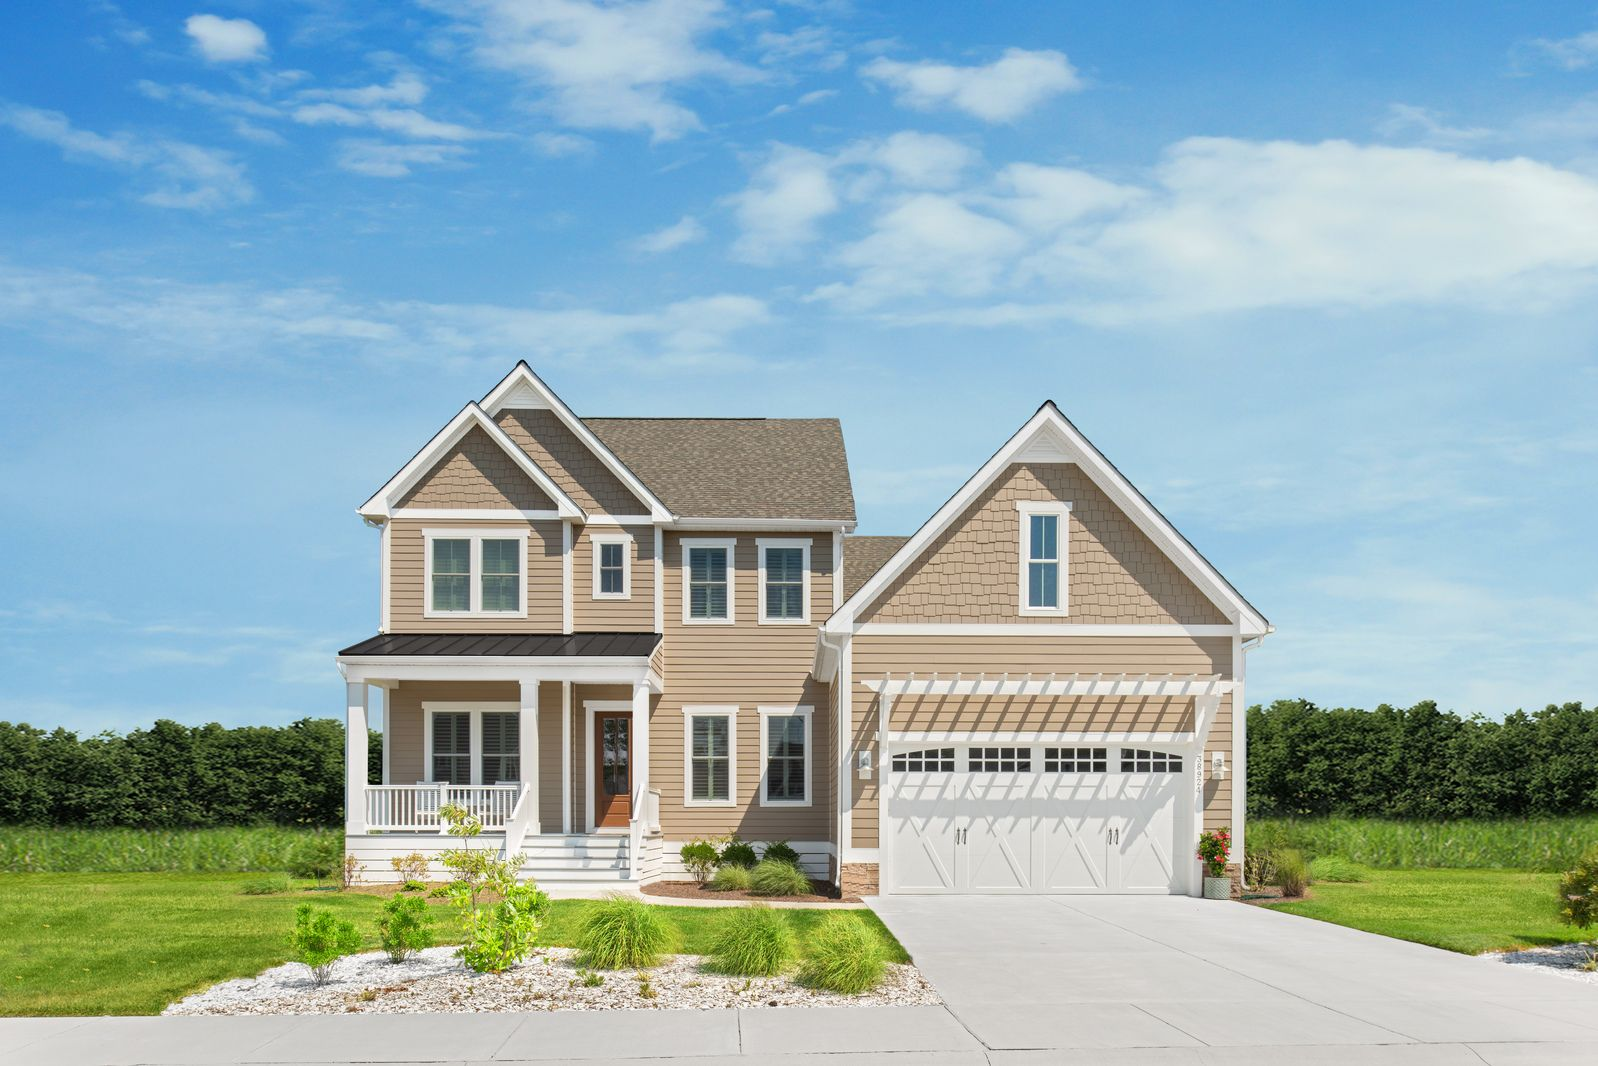 Welcome to The Reserves:New single-family homes in a sought after location just 2 miles from downtown Bethany Beach.Click here to schedule your 1:1 or virtual appointment today!